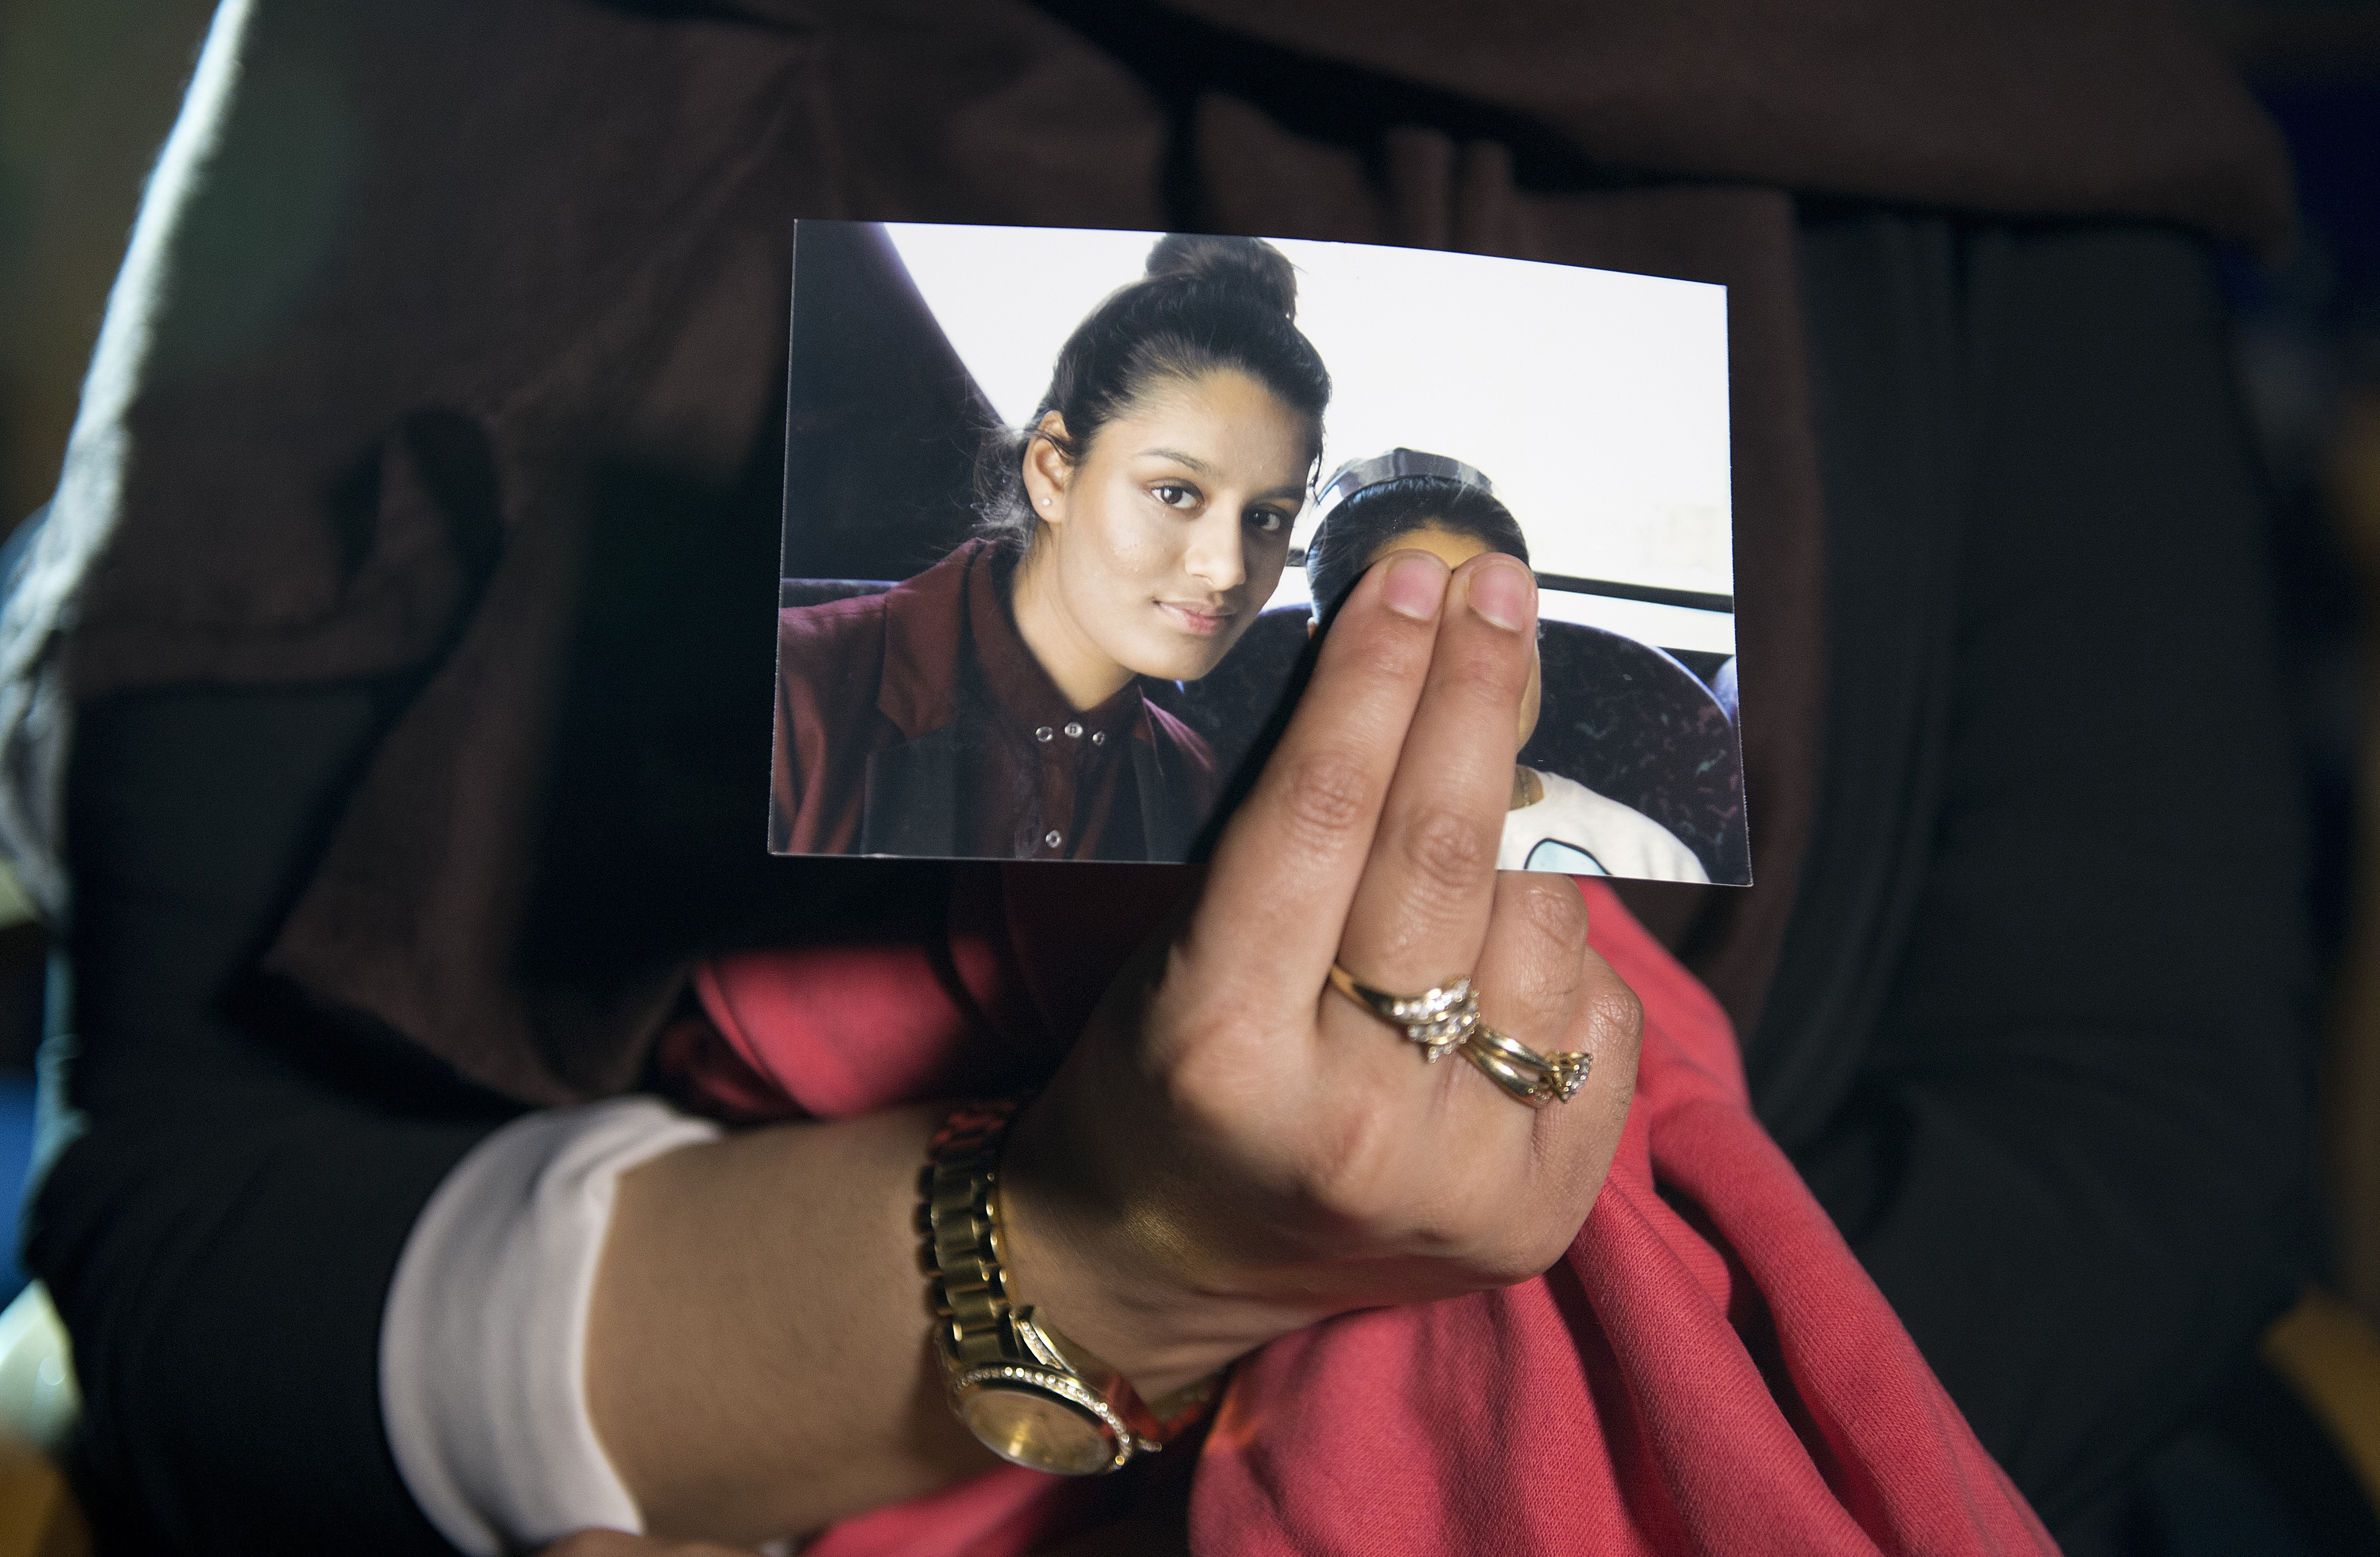 FILE - Renu Begum, eldest sister of missing sister of missing British girl Shamima Begum, holds a picture of her sister while being interviewed by the media in central London, Feb. 22, 2015.